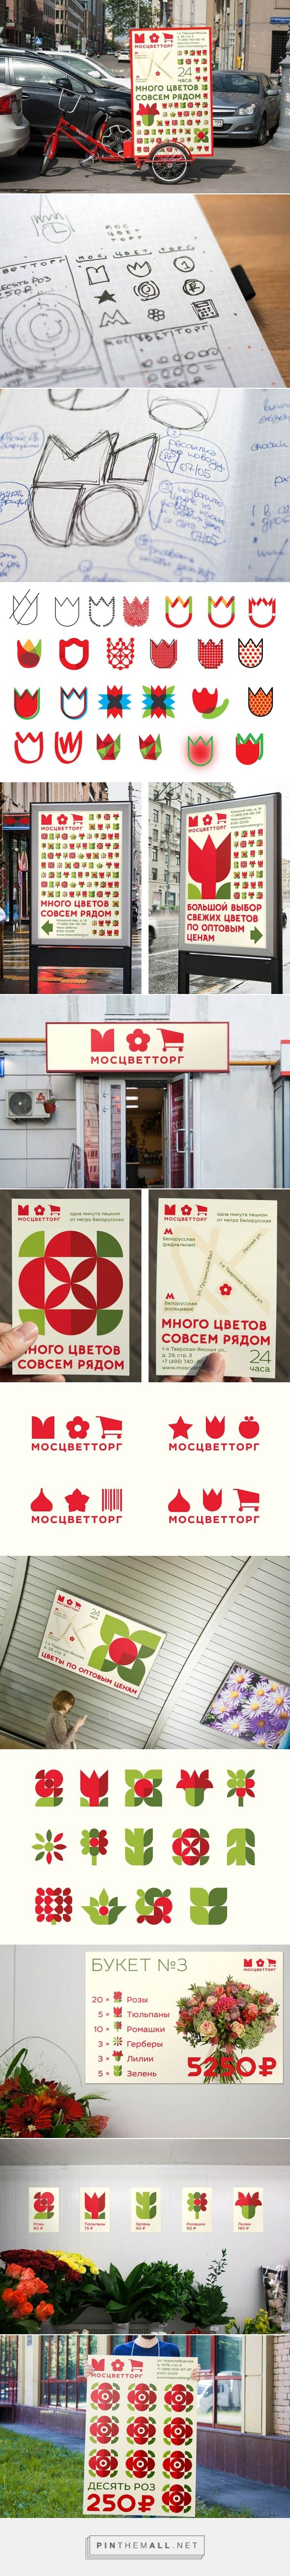 Moscvettorg is a market leading chain of 71 flower shops in Moscow | #visual #identity #design by @movingbrands via @ID_Designed